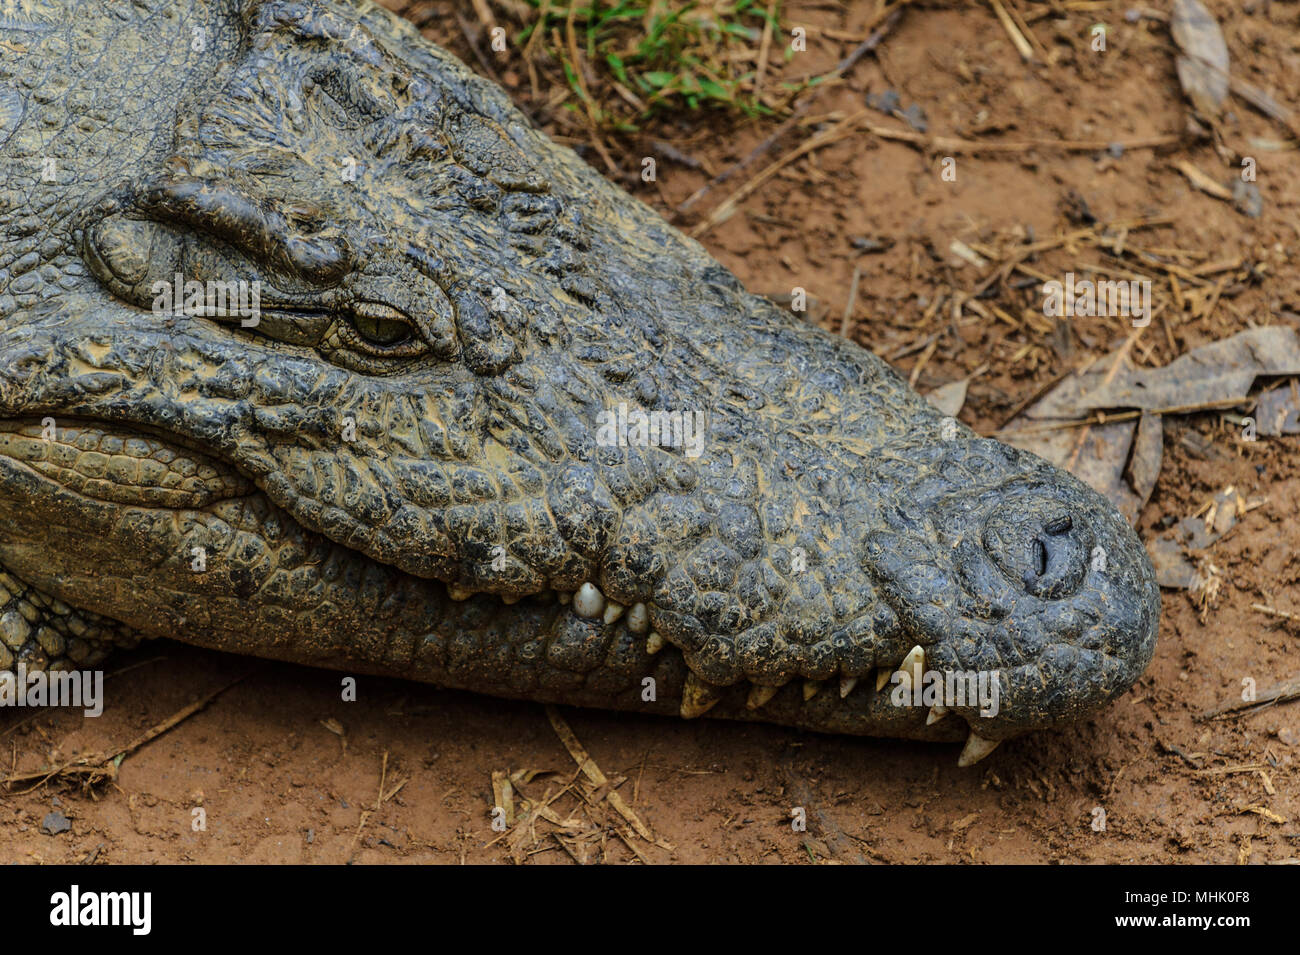 Portrait of a Nile crocodile (Crocodylus niloticus), an African crocodile and the second largest extant reptile in the world, after the saltwater croc - Stock Image